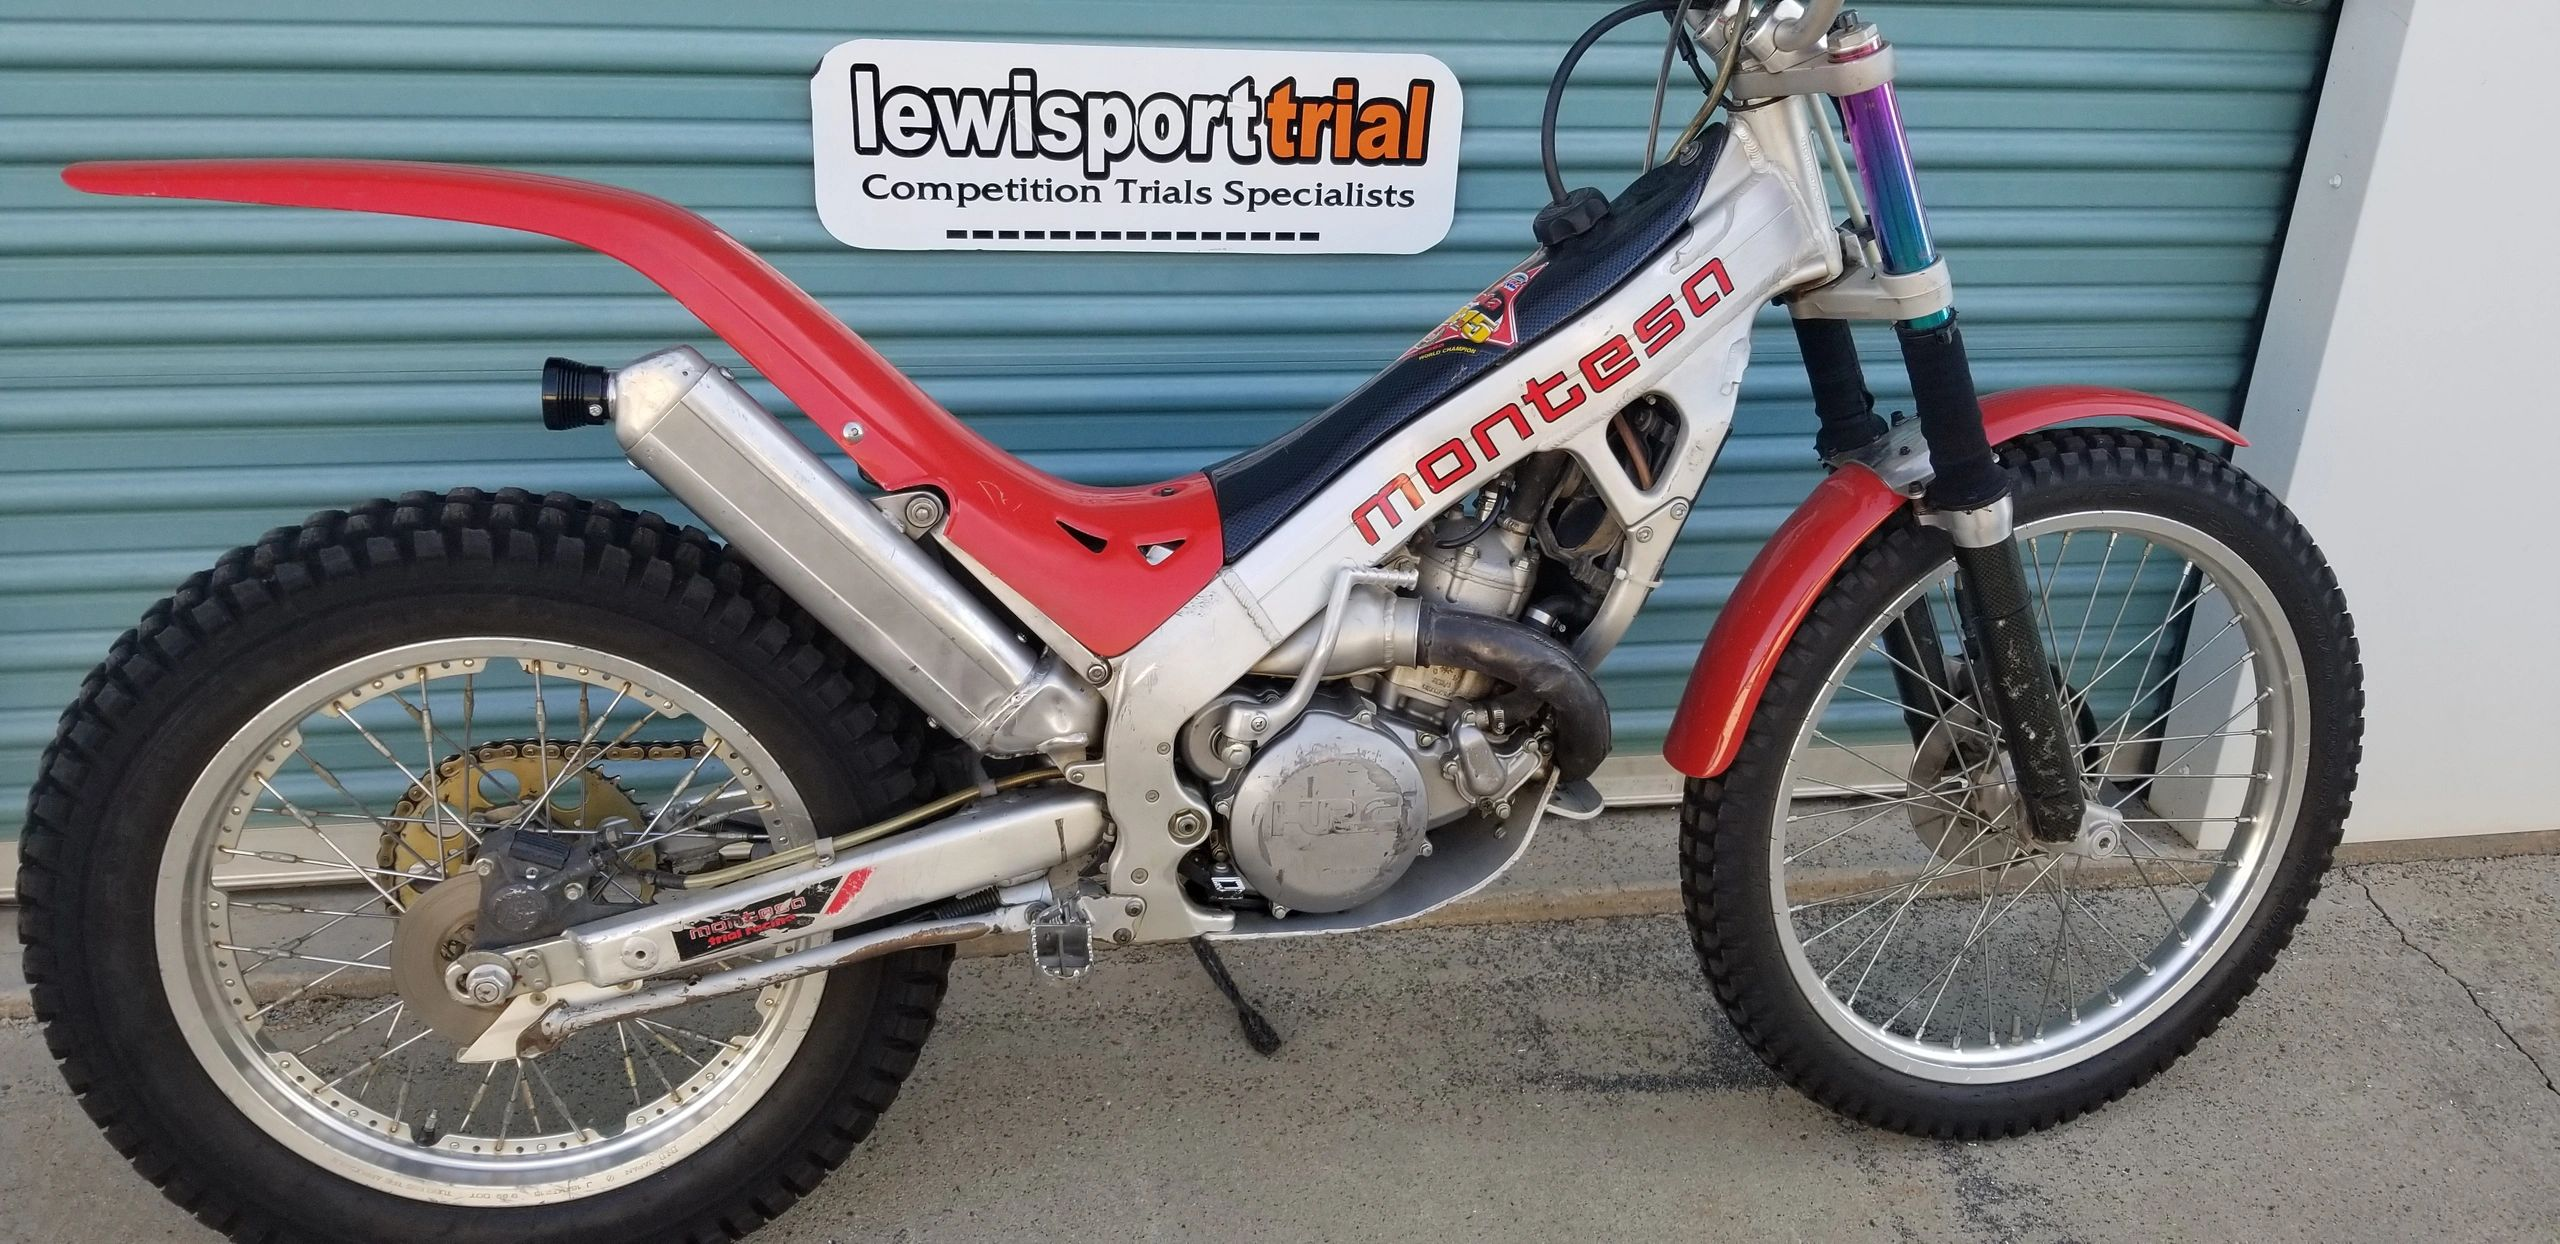 "{""blocks"":[{""key"":""7foh"",""text"":""Montesa 315r 2 stroke 1999, good example of this very popular trials machine-- bike is in good condition and has all paperwork including a CA green sticker, bike is situated here at our shop , please call owner for more details $2500...Dennis Edwards Tel:209.795.5491 or cell 209.768.8146"",""type"":""unstyled"",""depth"":0,""inlineStyleRanges"":[],""entityRanges"":[],""data"":{}}],""entityMap"":{}}"